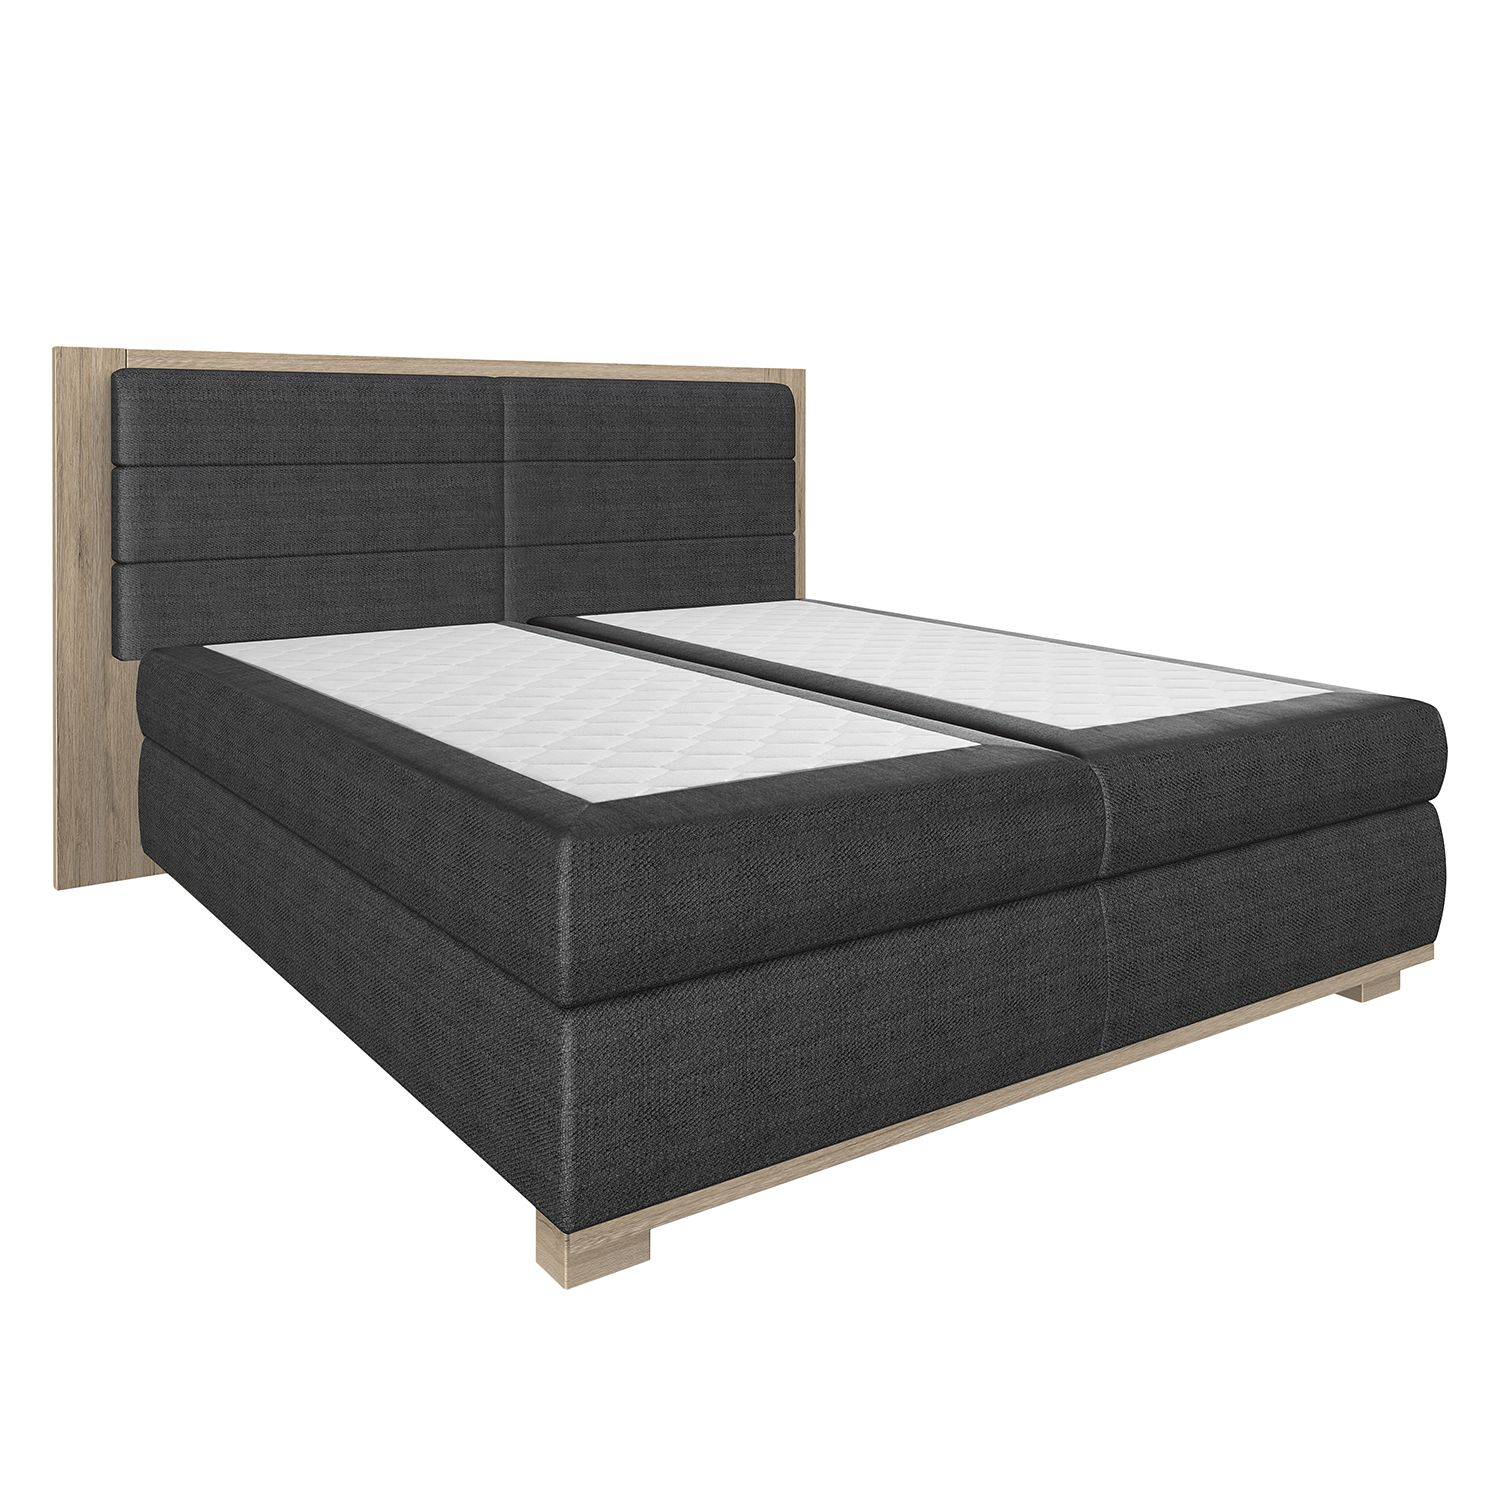 boxspringbett ohio ohne topper anthrazit schlammeiche dekor wimex online kaufen bei woonio. Black Bedroom Furniture Sets. Home Design Ideas